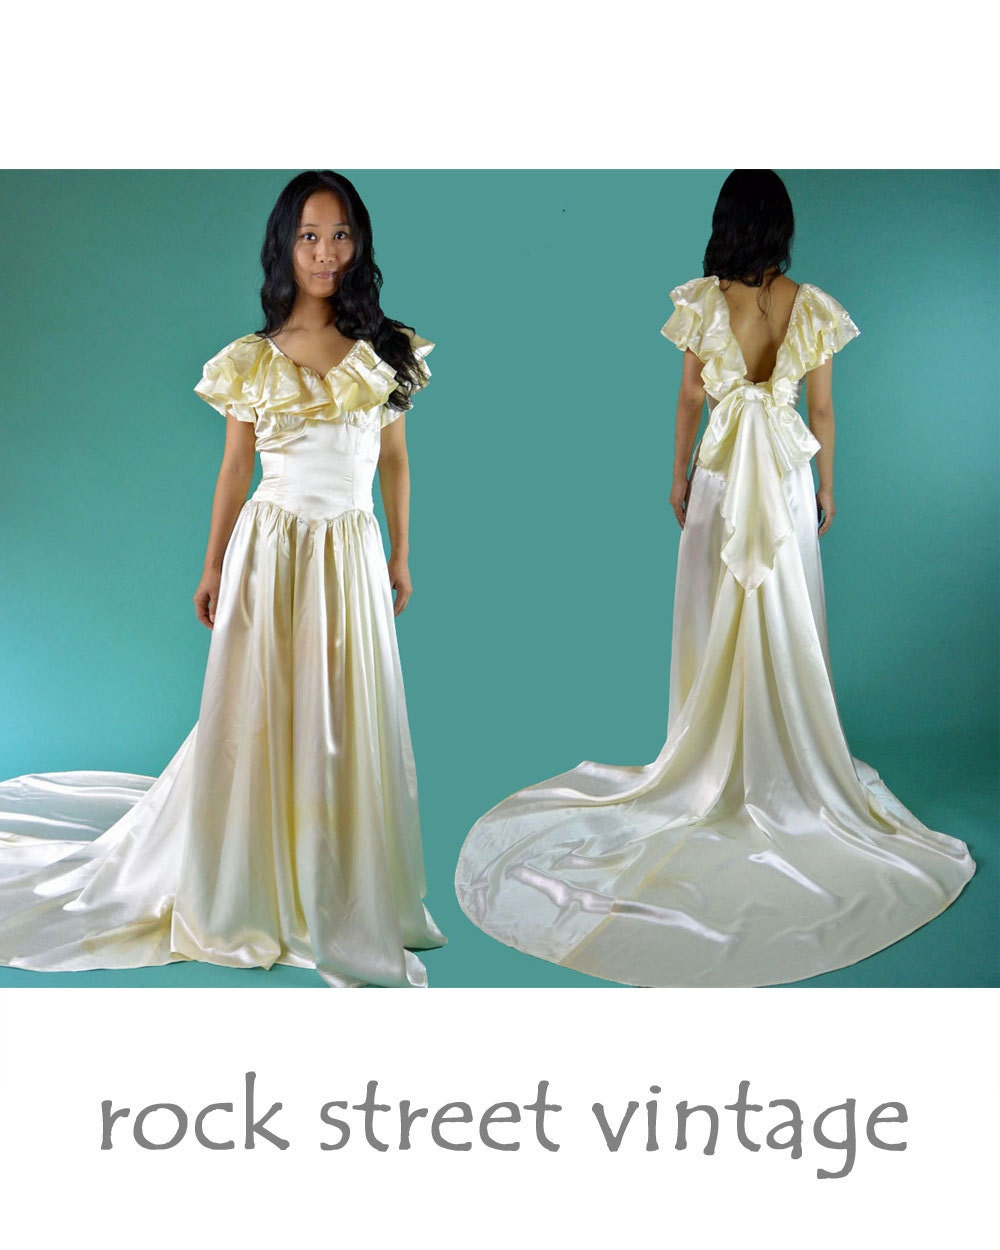 Vintage s wedding dress cream s atin bohemian wedding dress long